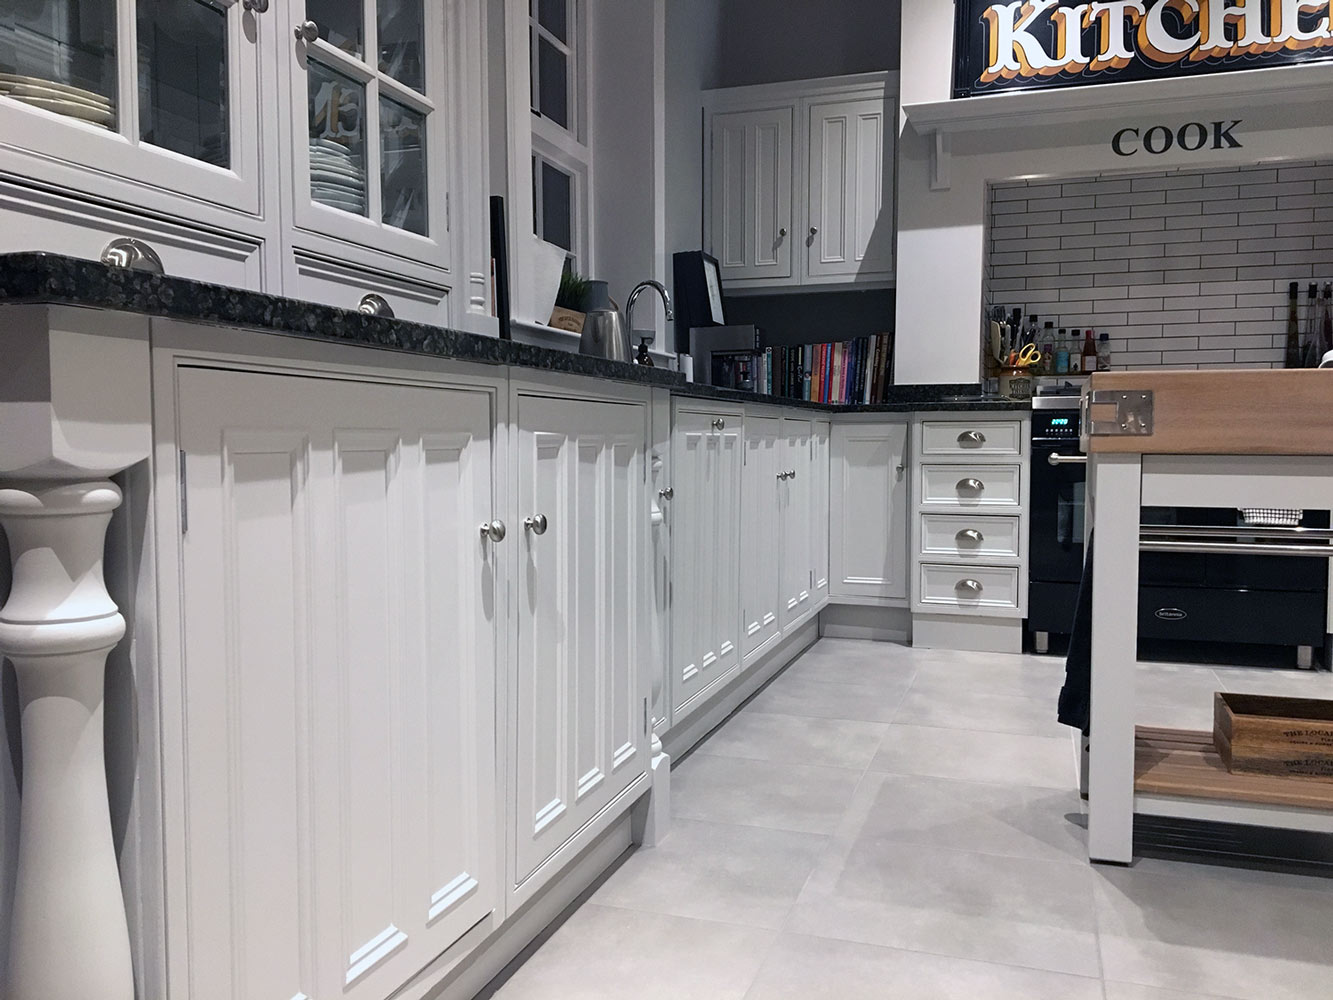 Close up view of the kitchen units